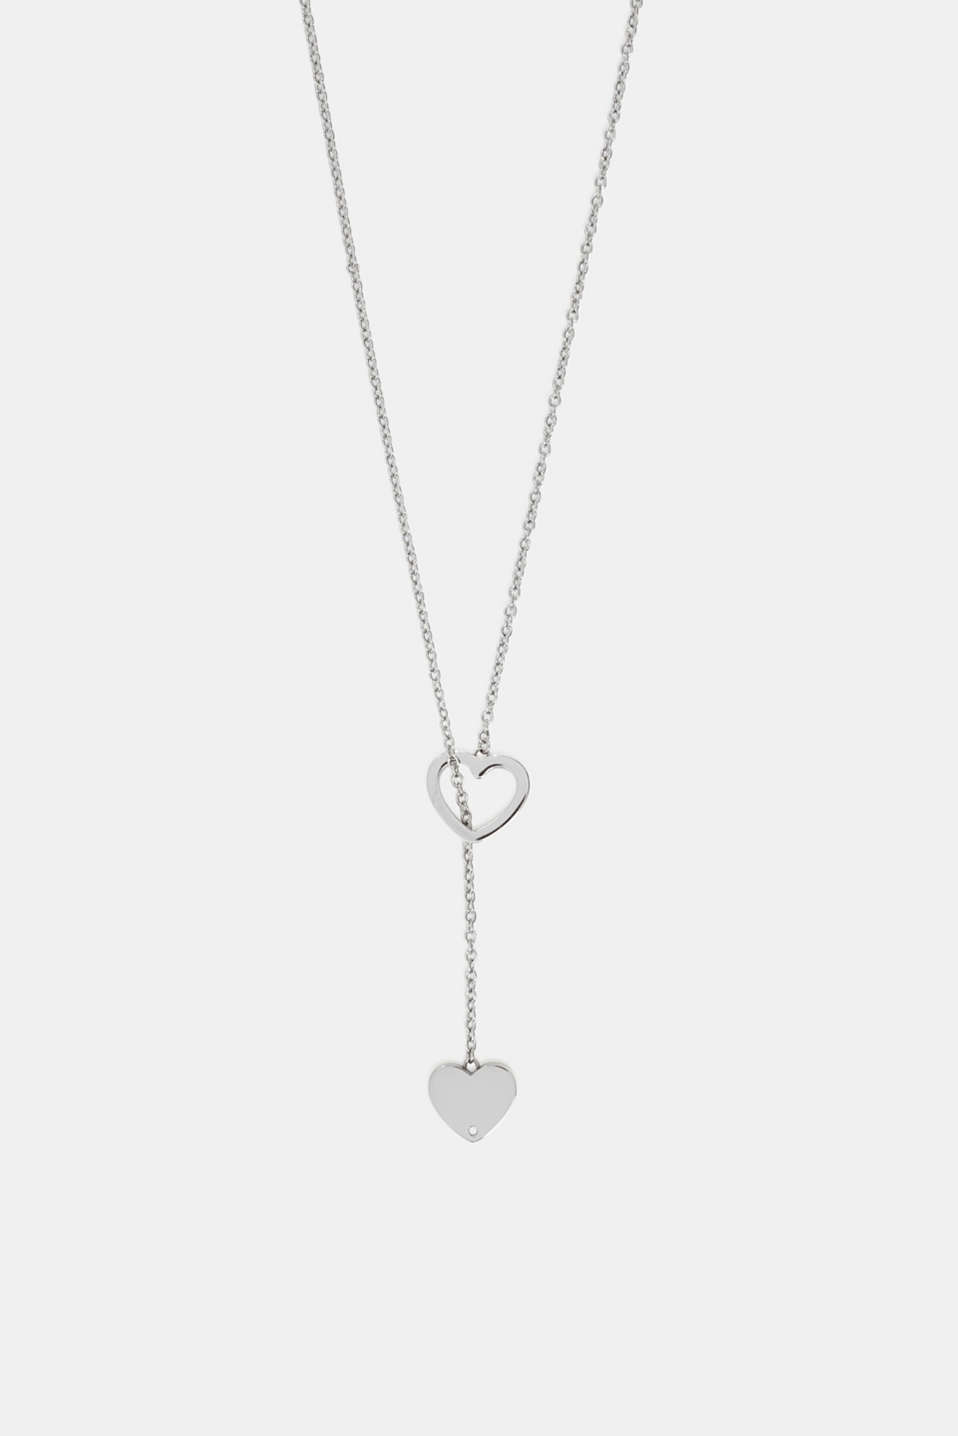 Pendant necklace with heart charm, stainless steel, SILVER, detail image number 0